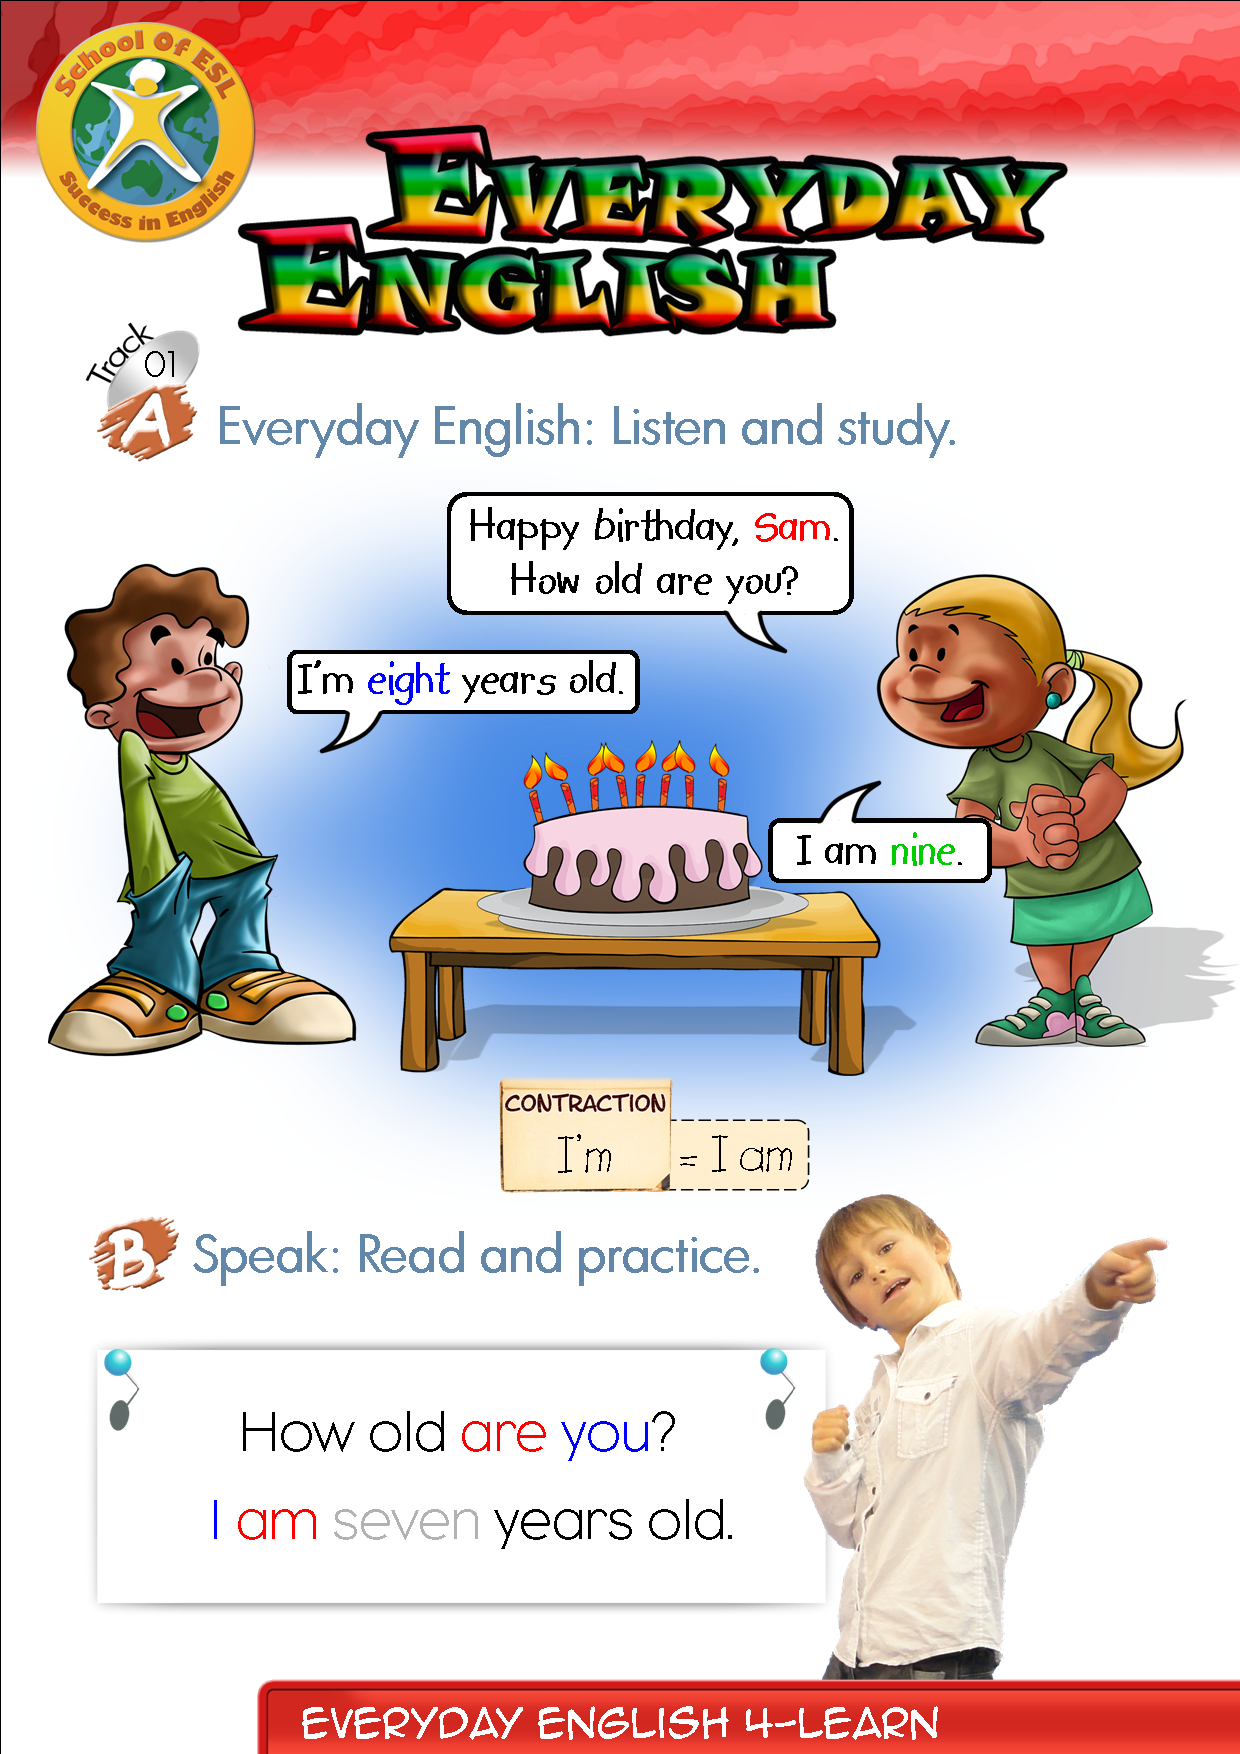 Everyday English Only Resources For Everyday English Study